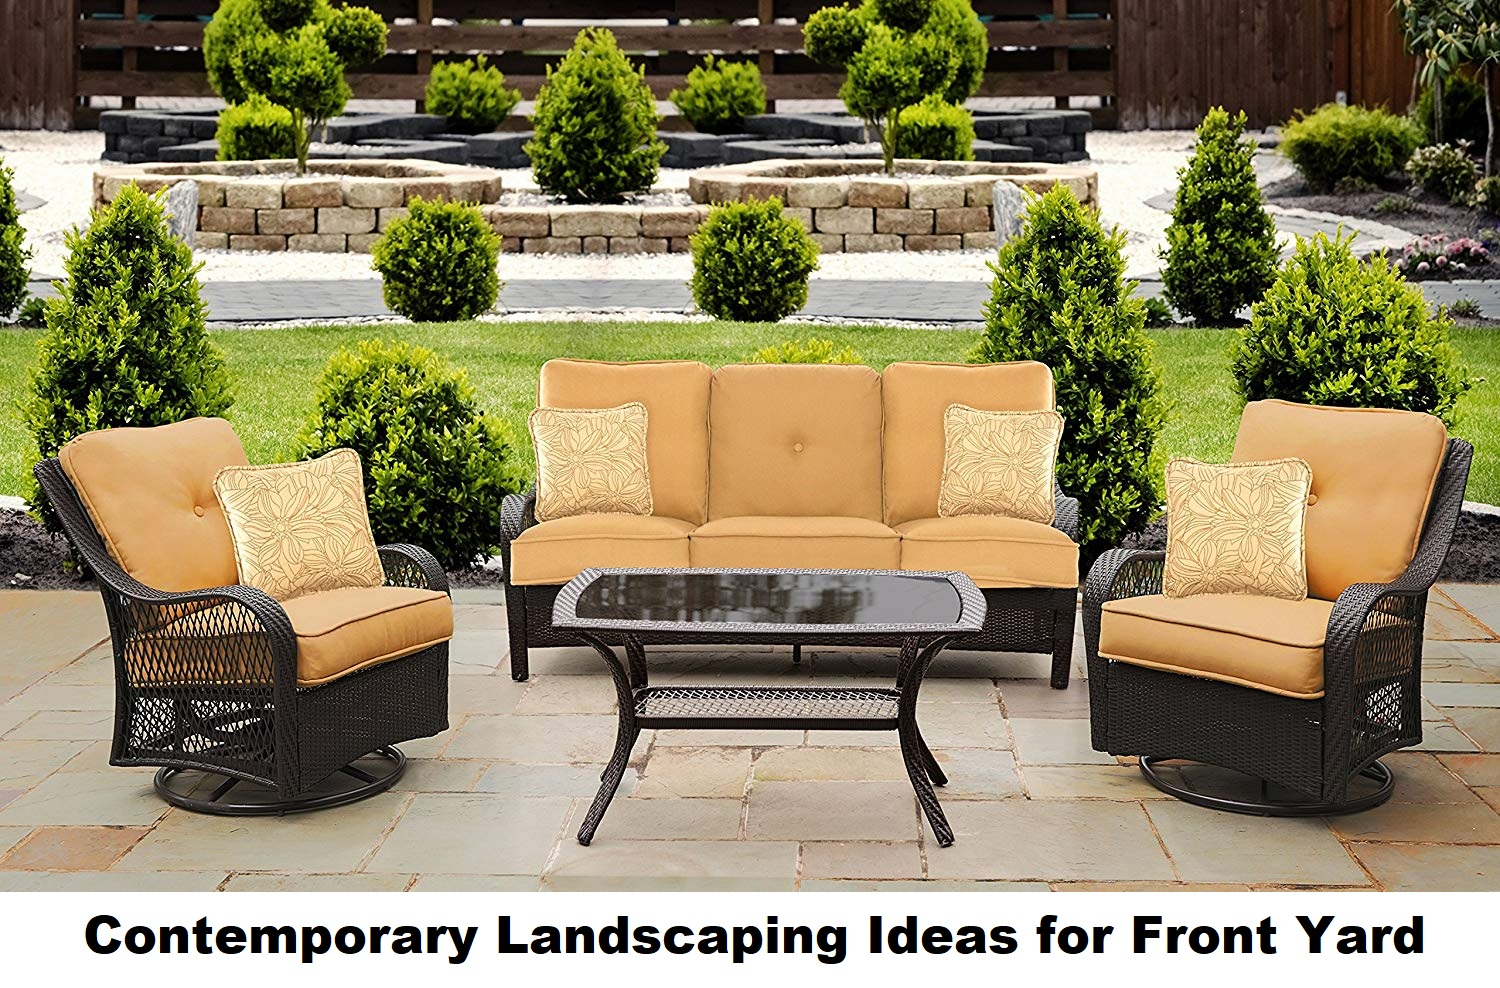 4 Contemporary Landscaping Ideas For Front Yard Smart Home Pick